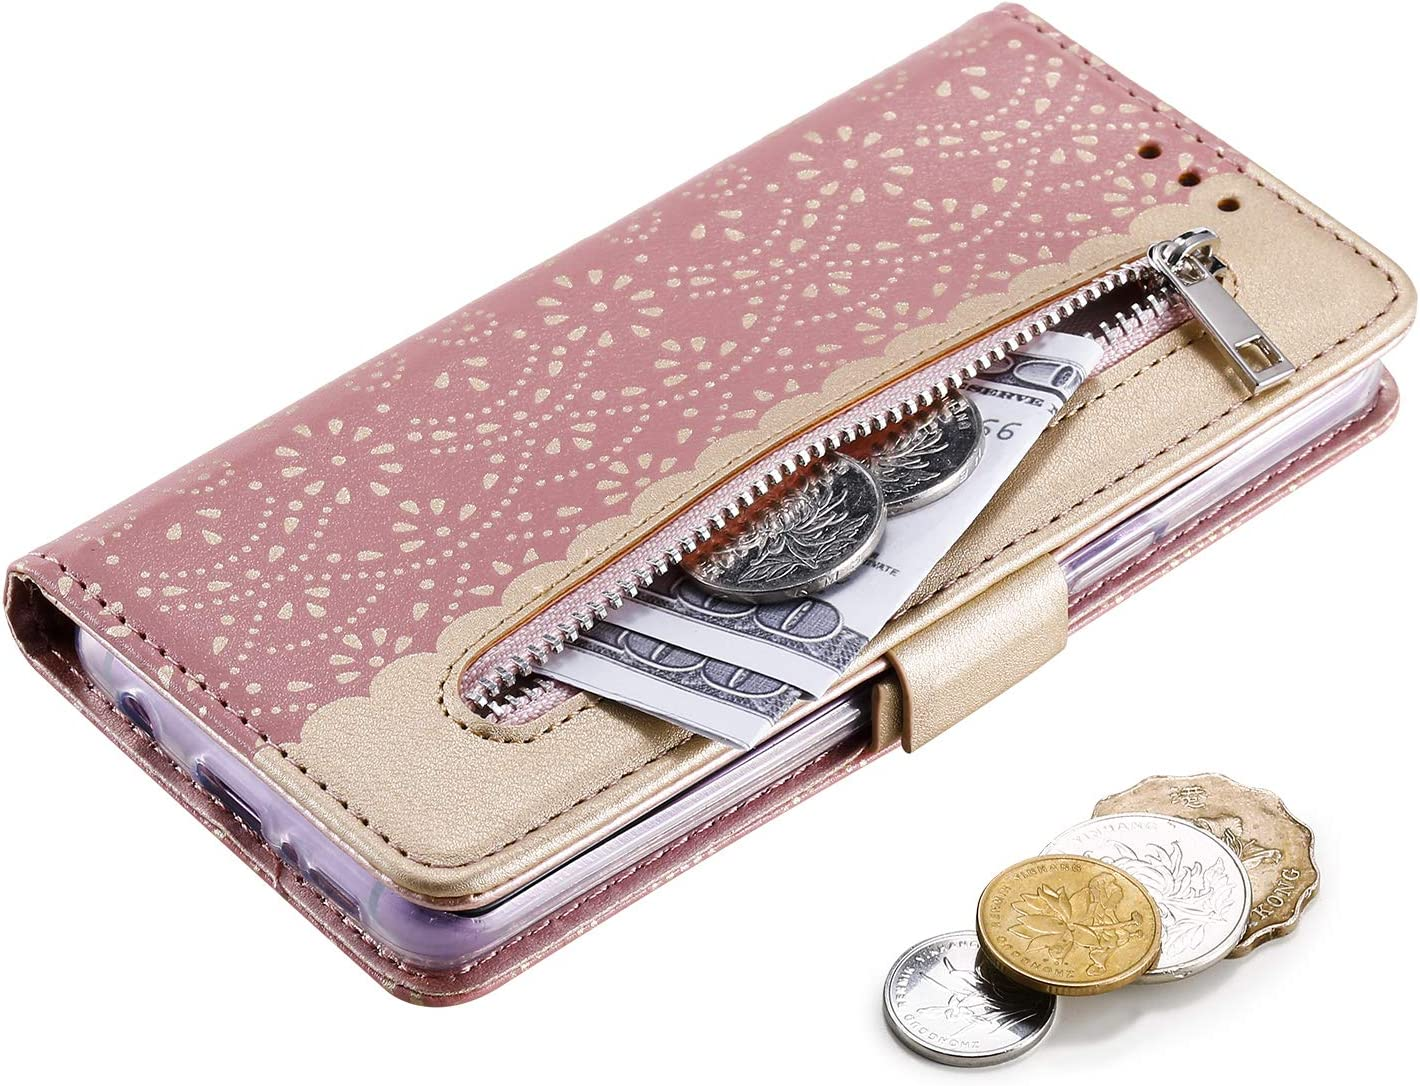 Stylish Flip Wallet Case for Samsung Galaxy S9 Plus,Lace Pattern PU Leather Case for Samsung Galaxy S9 Plus,Moiky Purple Lace Hollow Case with Wrist Strap Shockproof Magnetic Closure Protection